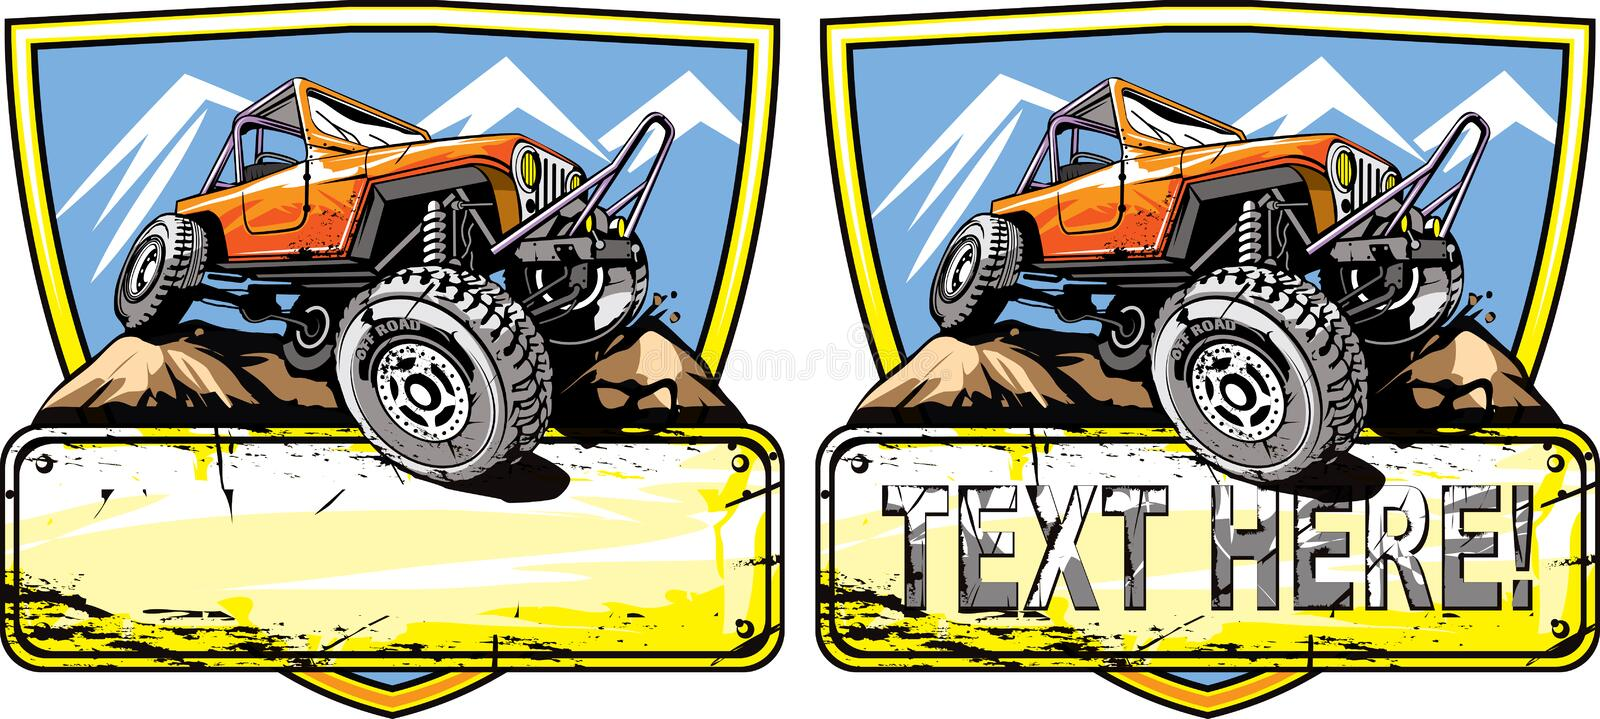 Off road vehicle. Vector illustration of of-road vehicle logo design stock illustration